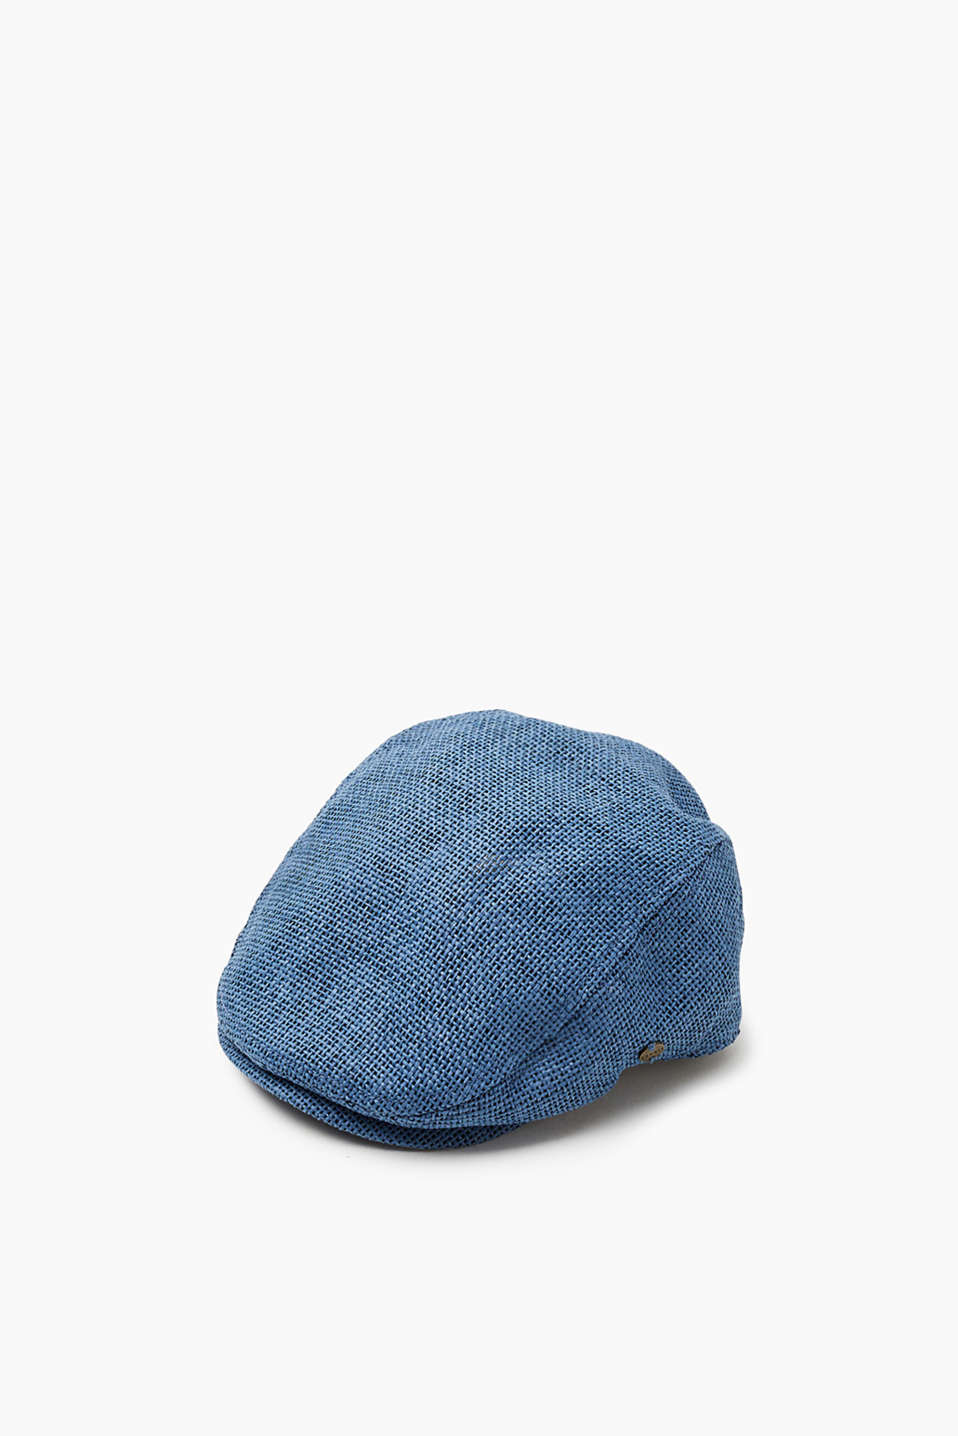 Classically styled: driver cap with a large surface